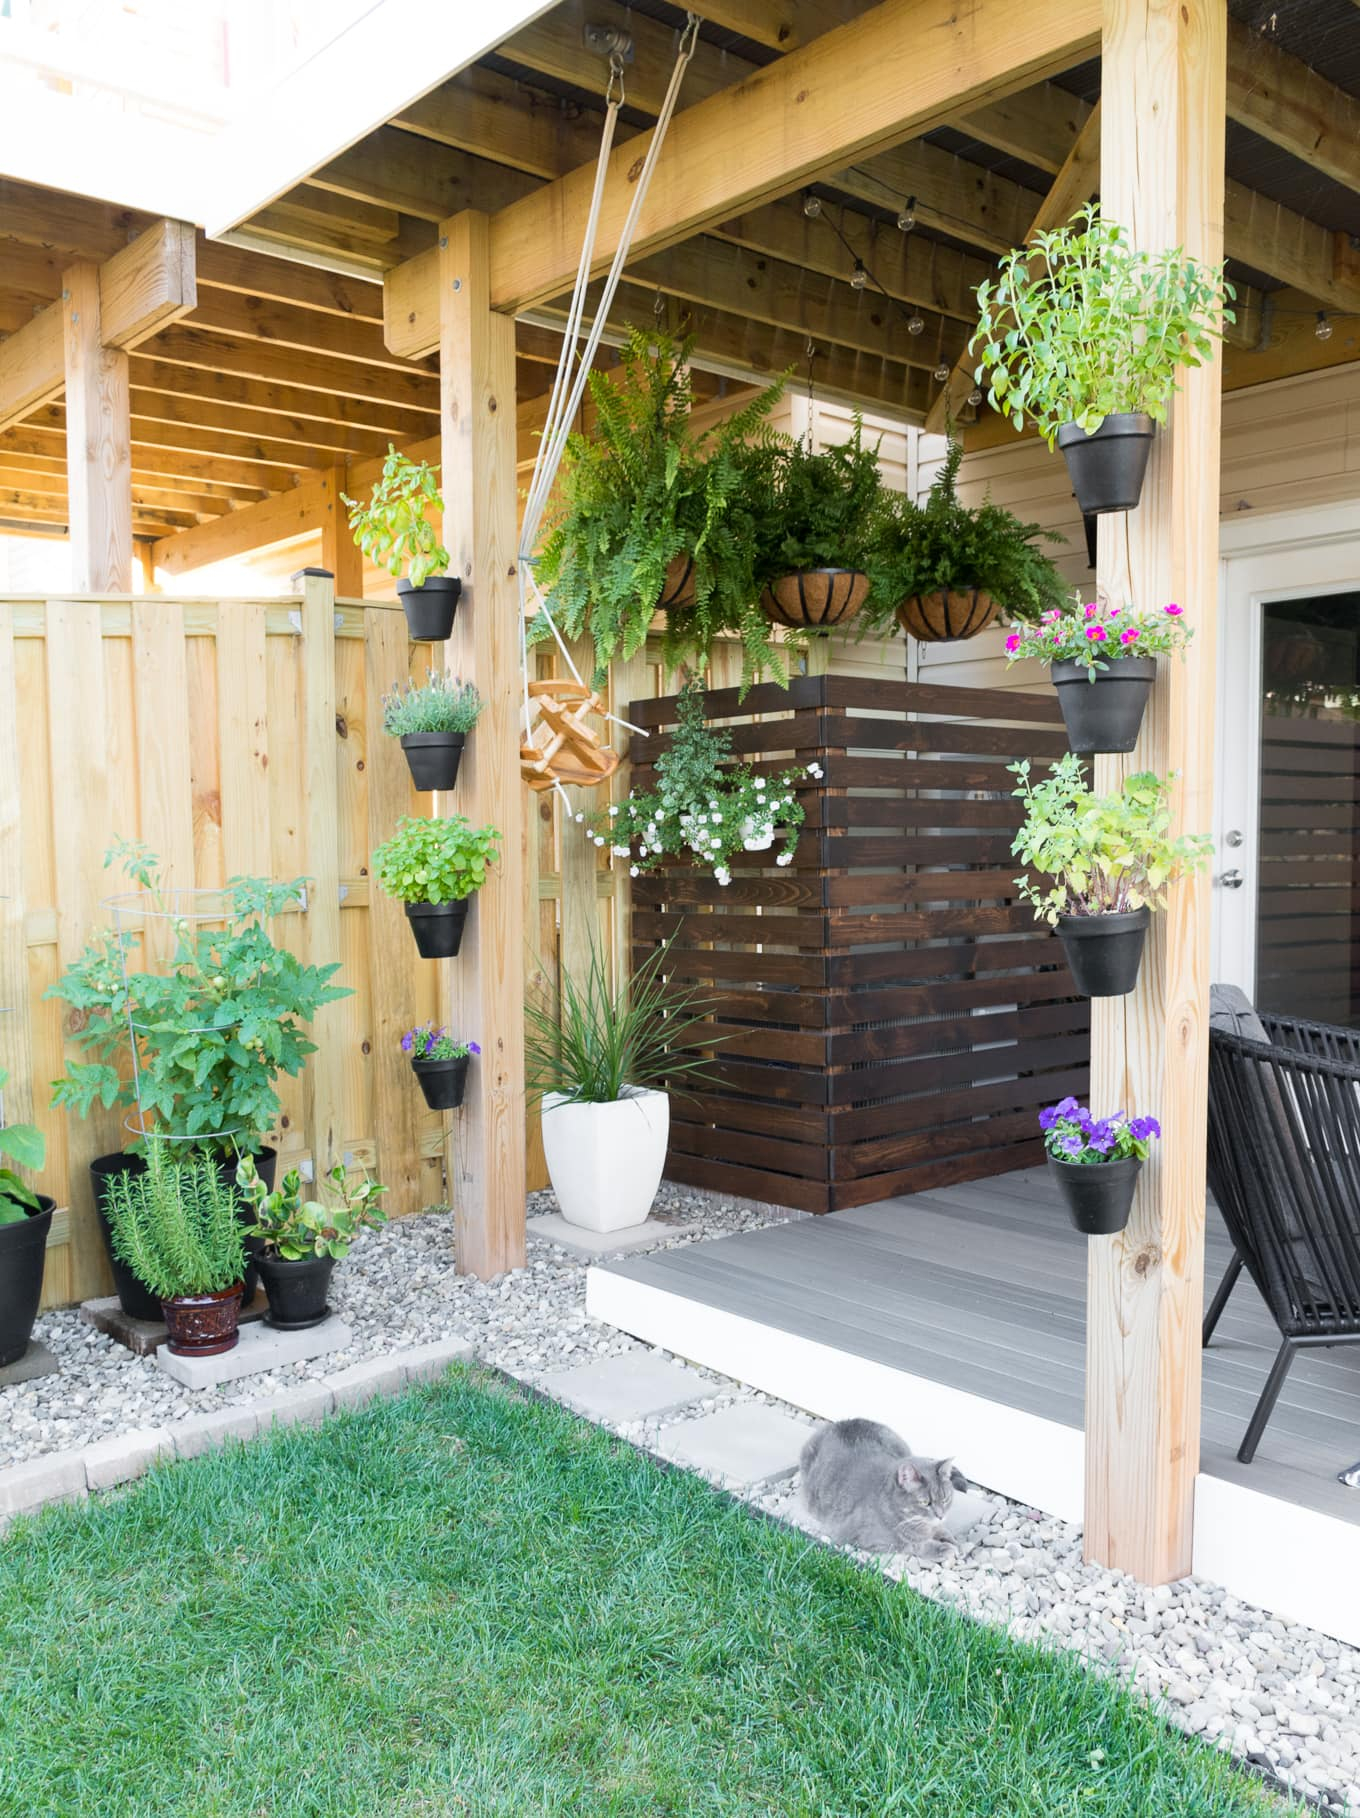 Tiny Backyard Ideas An Update On My Tiny Backyard Garden for 12 Smart Ways How to Improve Backyard Landscaping DIY